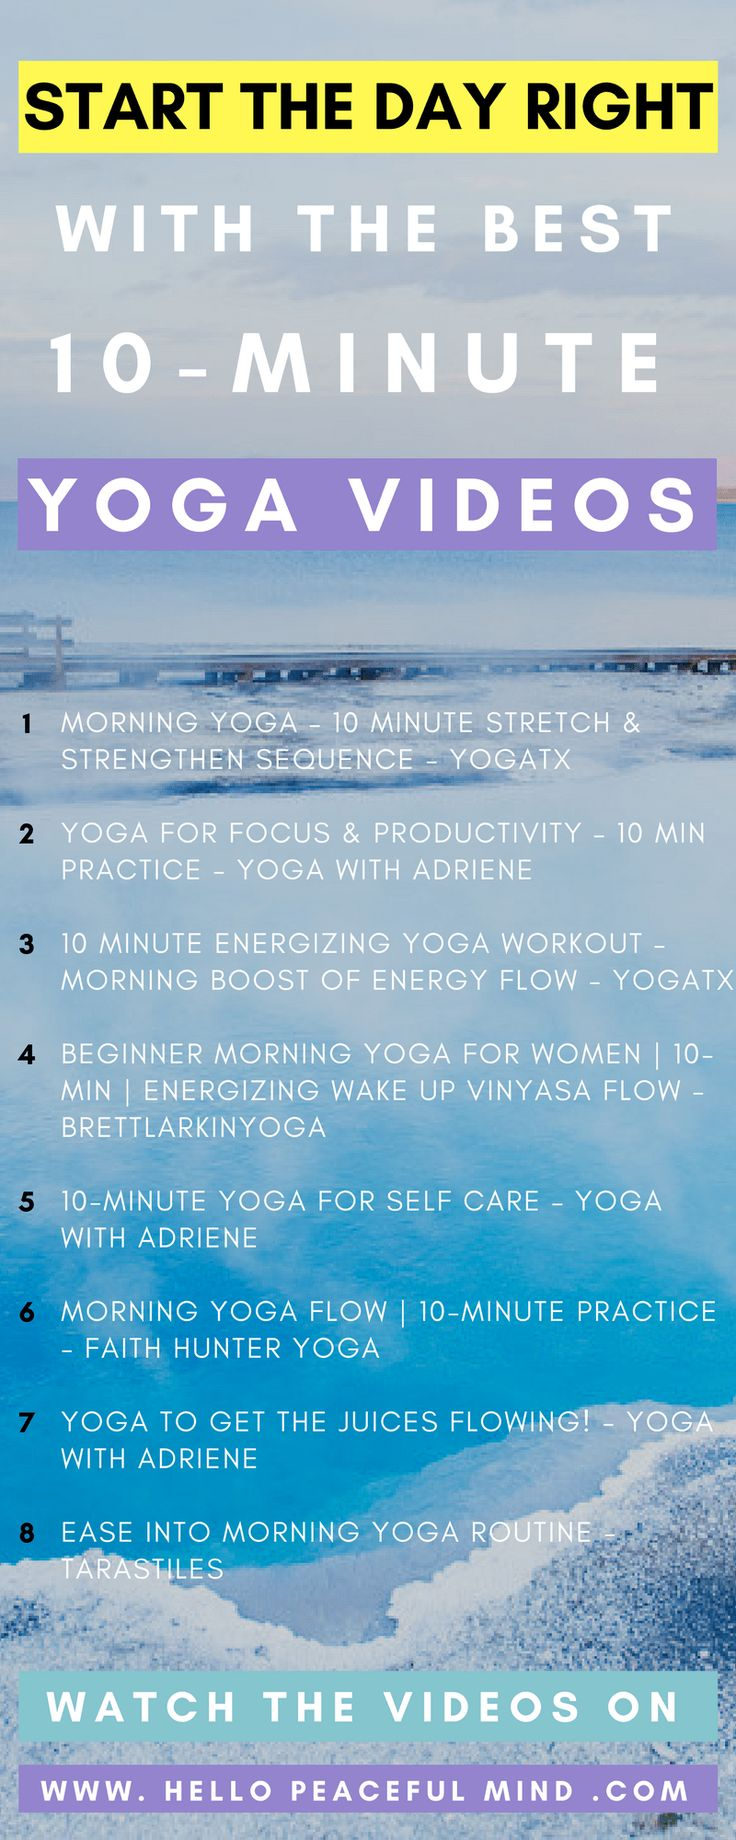 These 10-minute morning yoga videos will help you start the day on a positive way. Watch them on www.HelloPeacefulMind.com